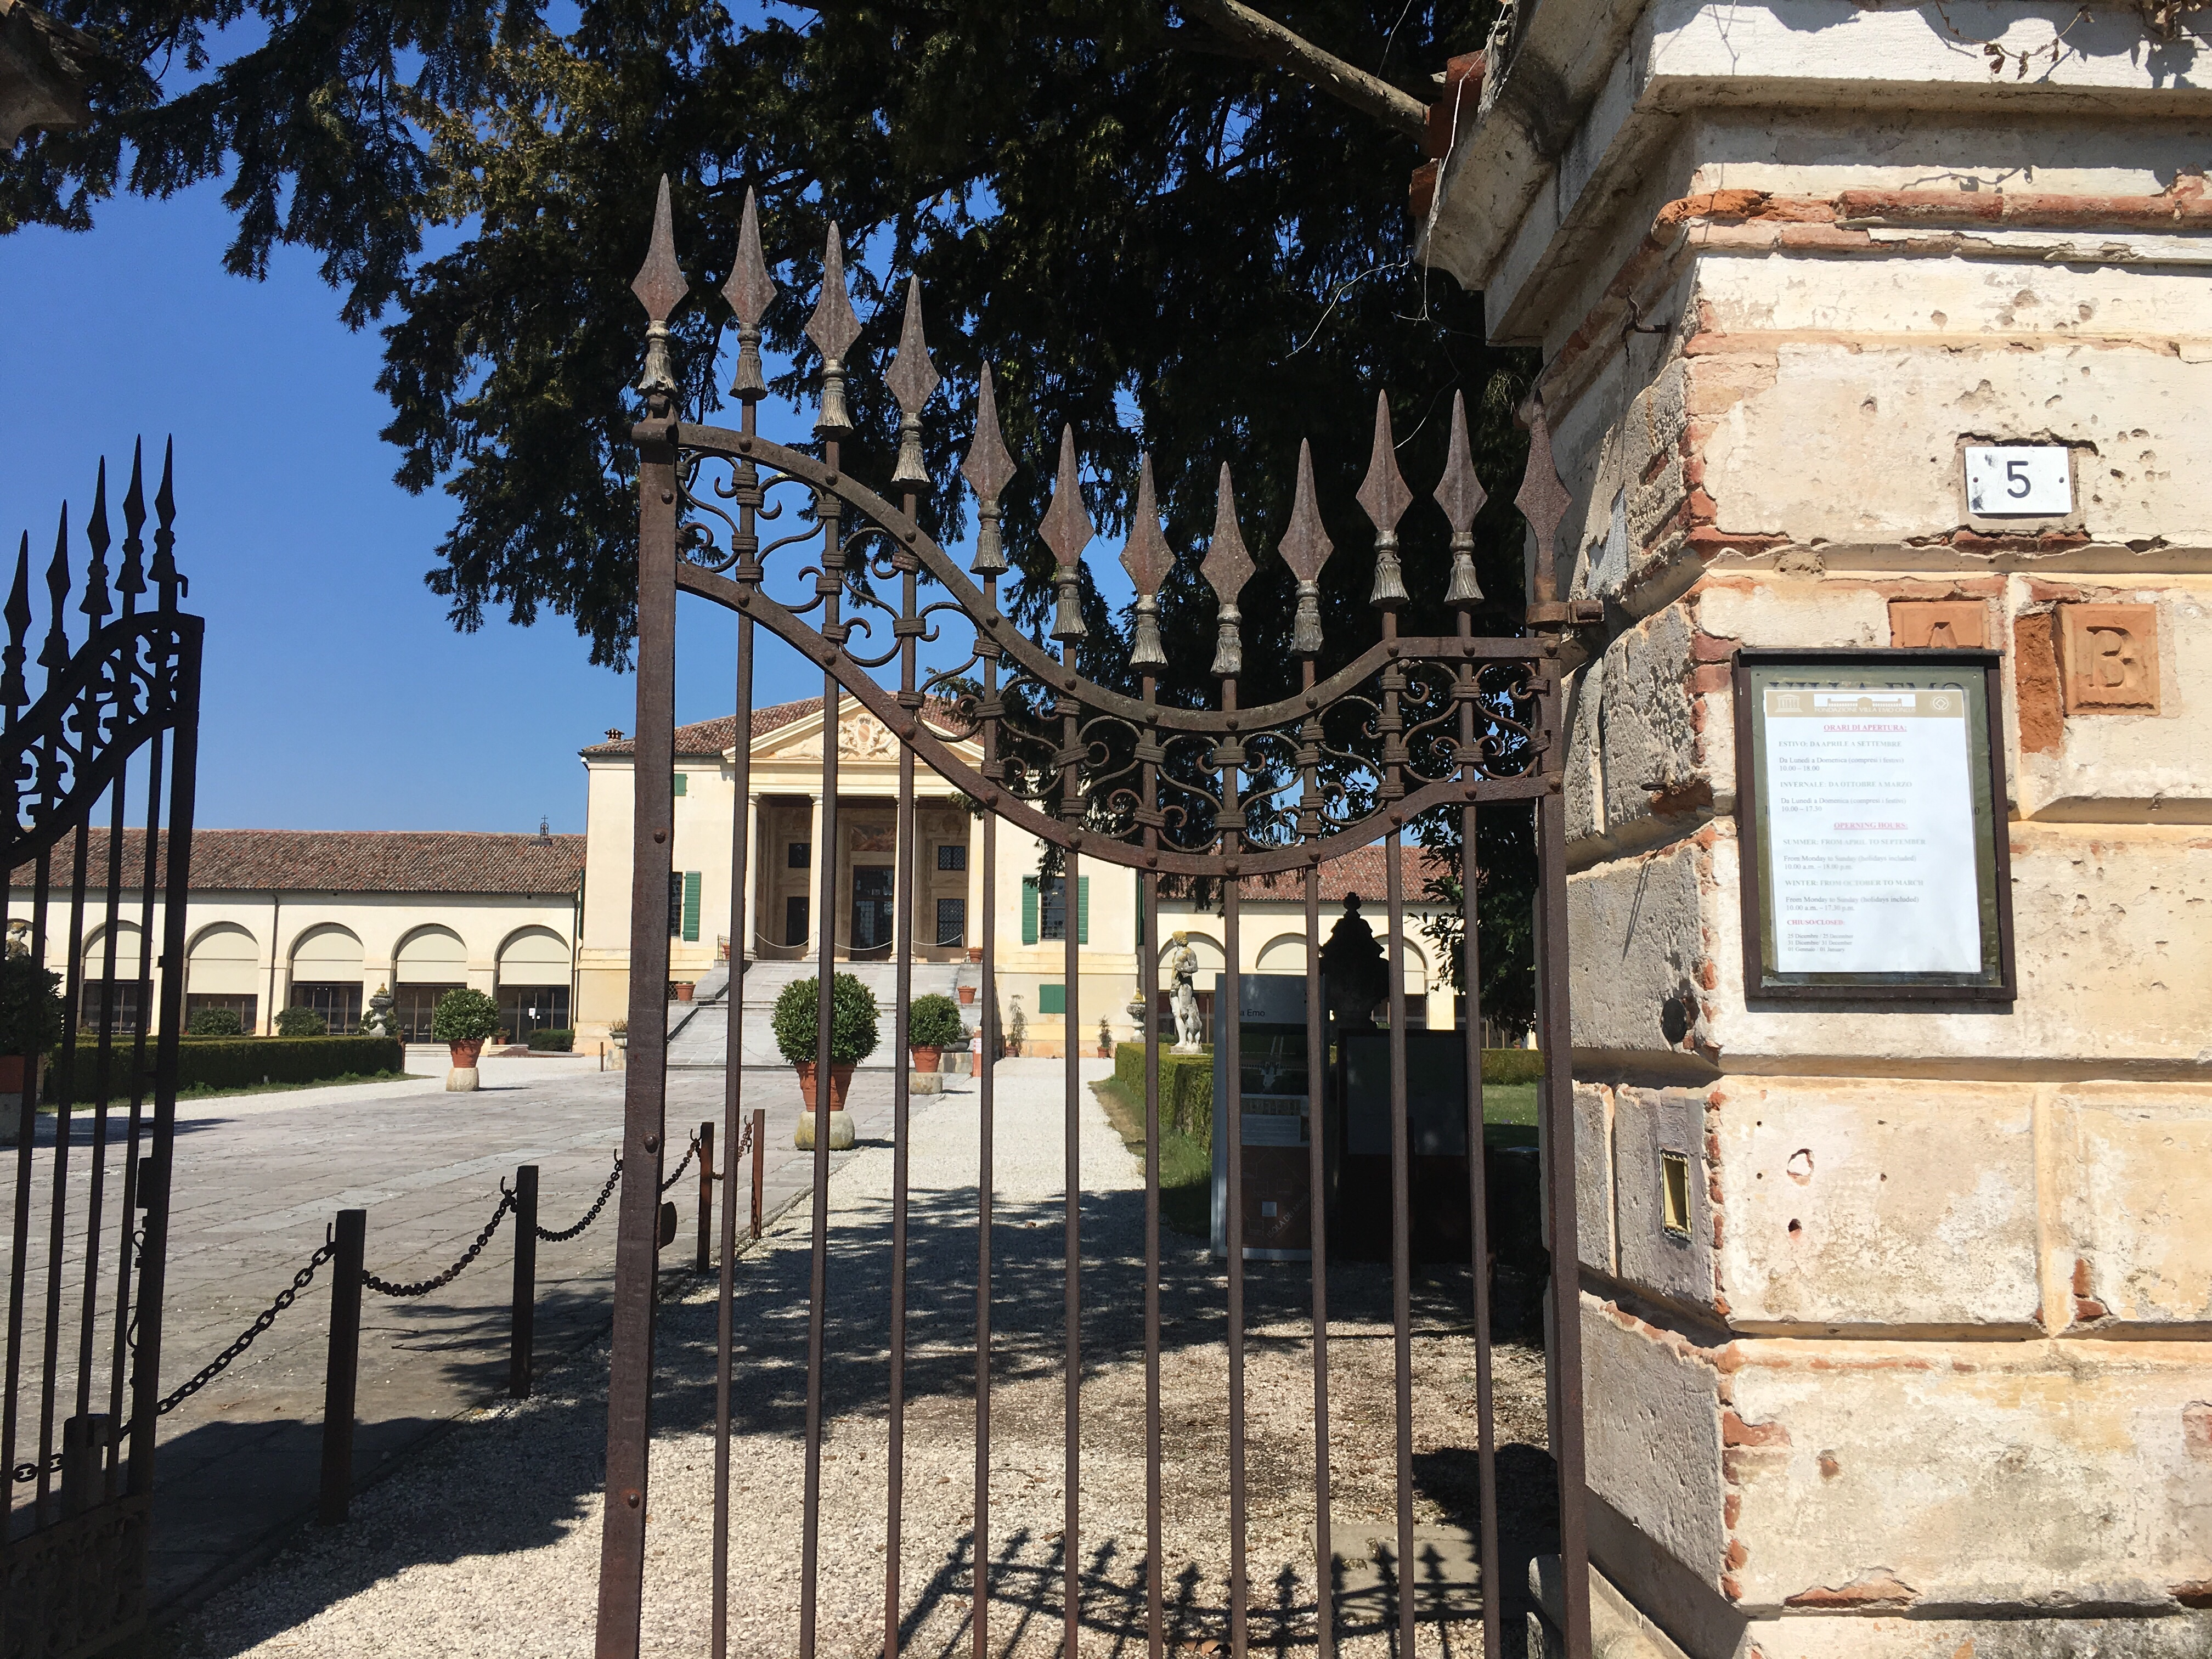 Villa Emo, Palladian Villa from the imposing wrought iron gates - www.educated-traveller.com